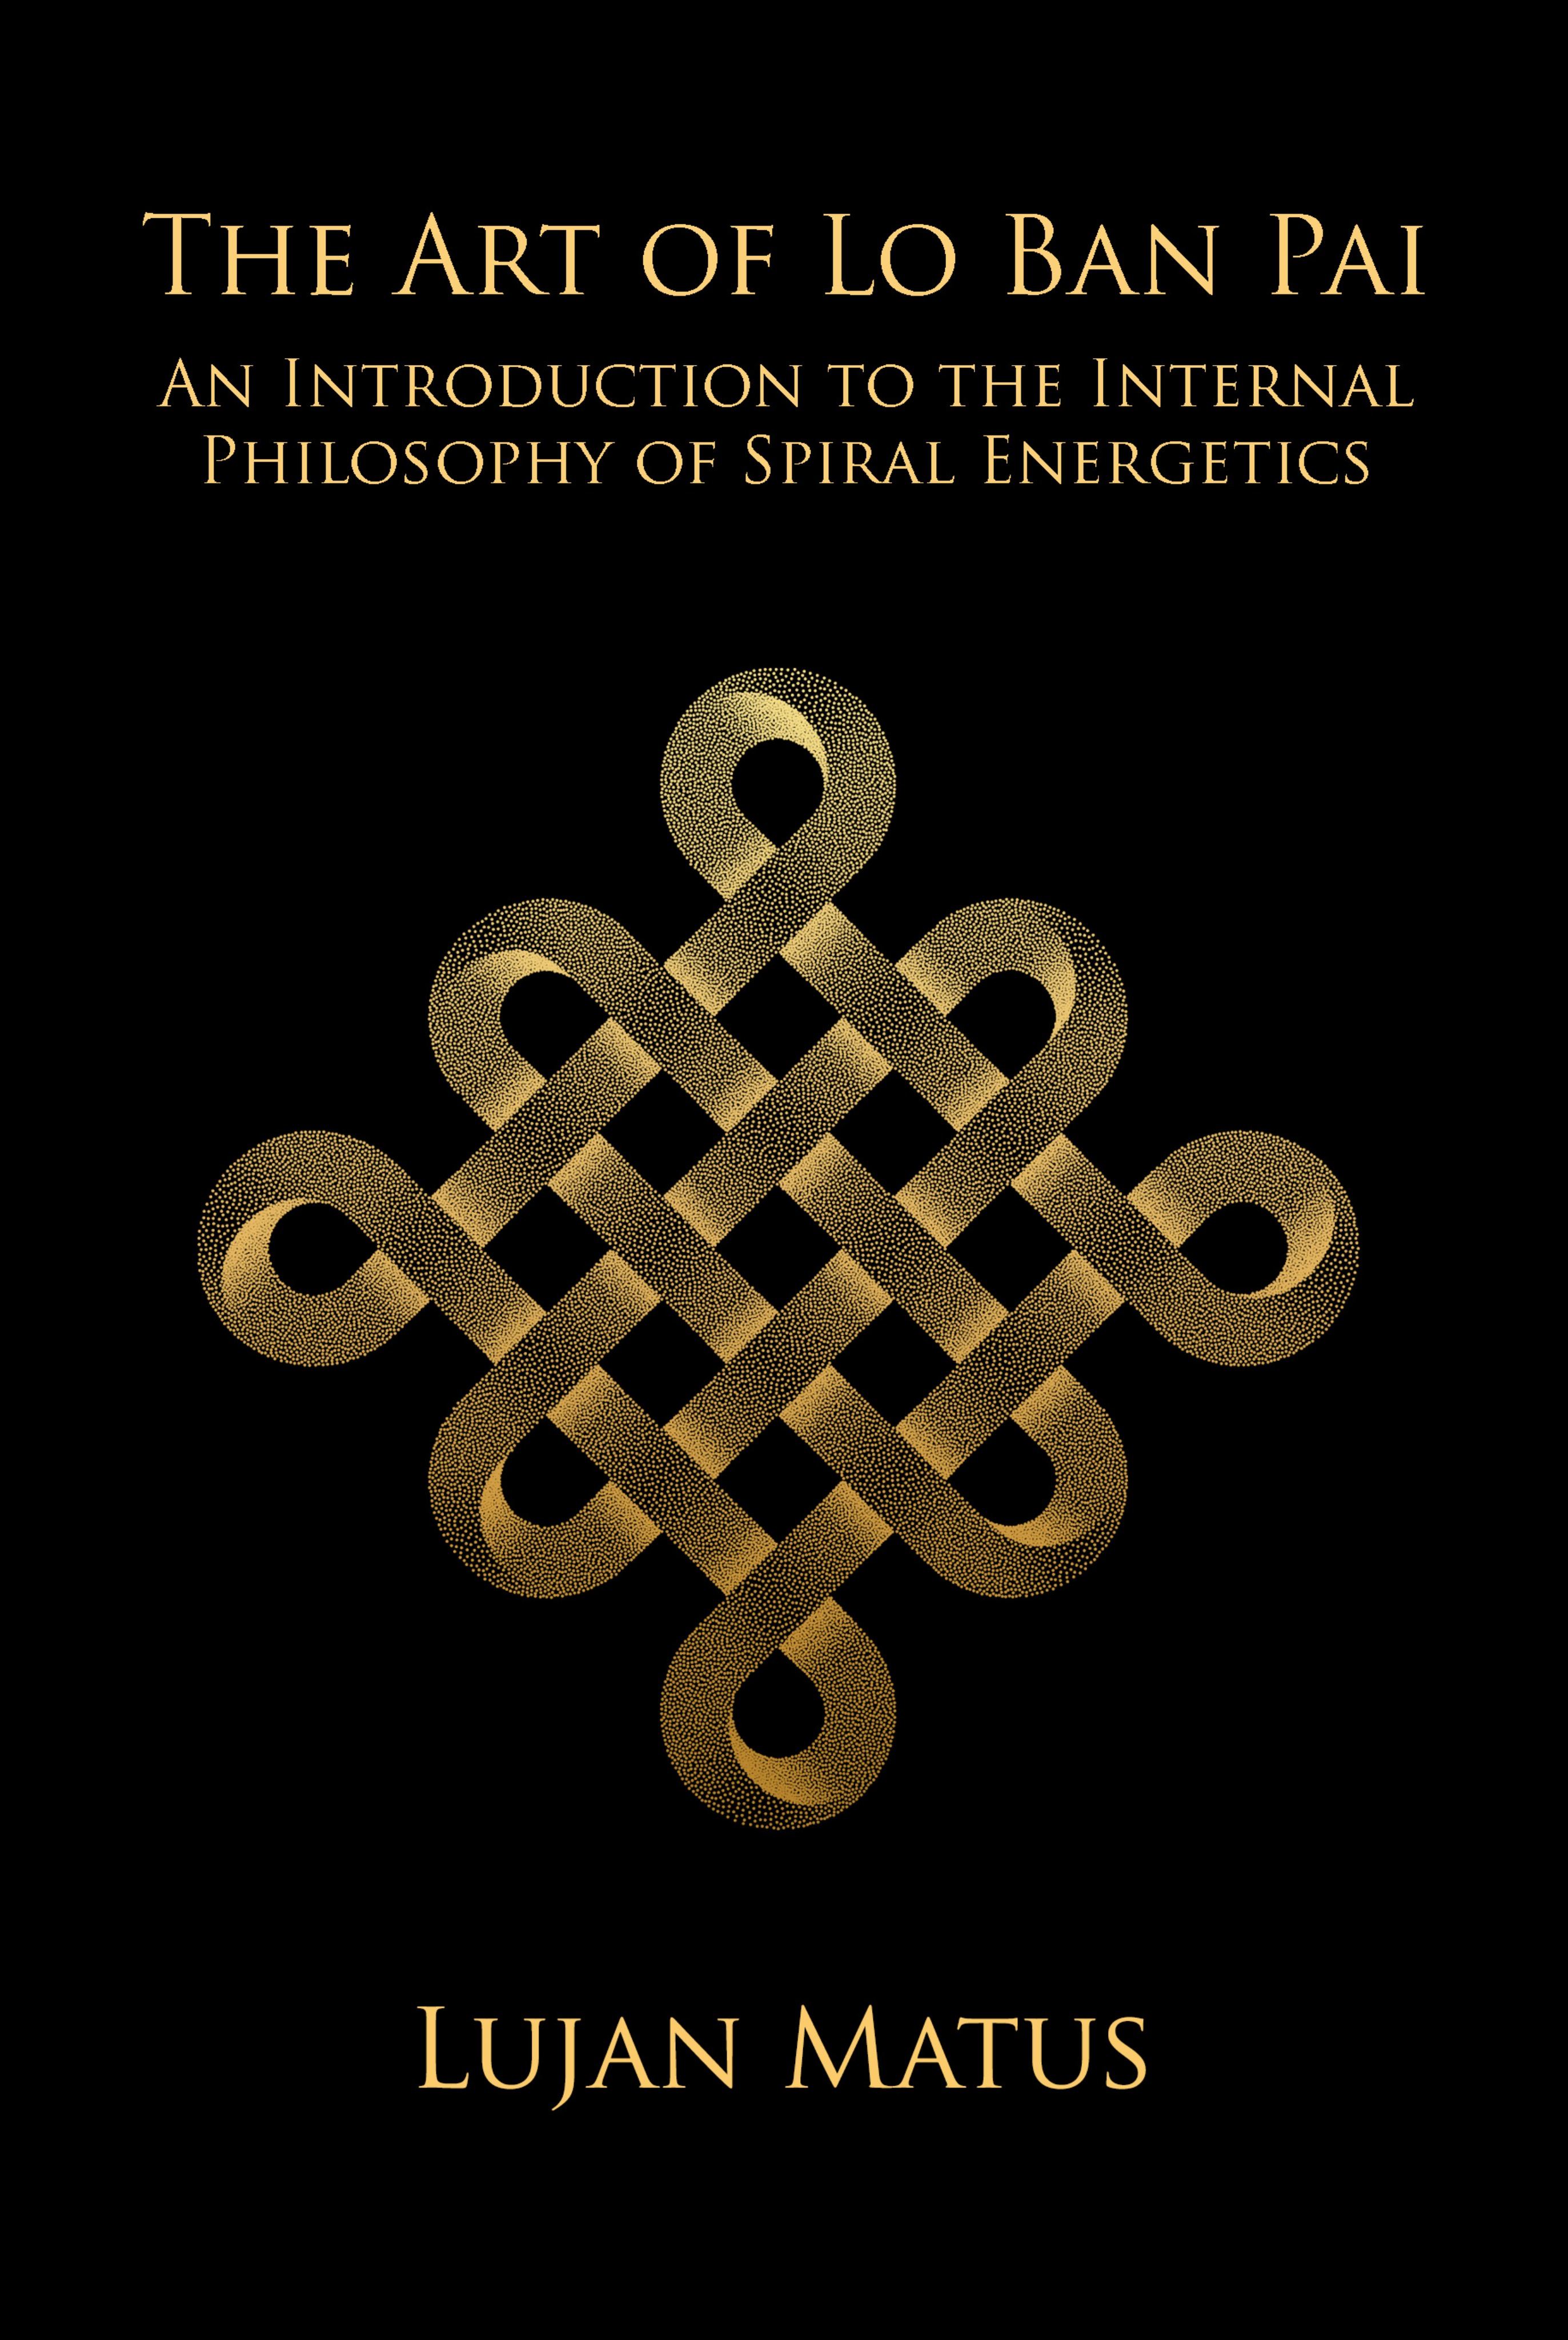 The Art of Lo Ban Pai: An Introduction to the Internal Philosophy of Spiral Energetics